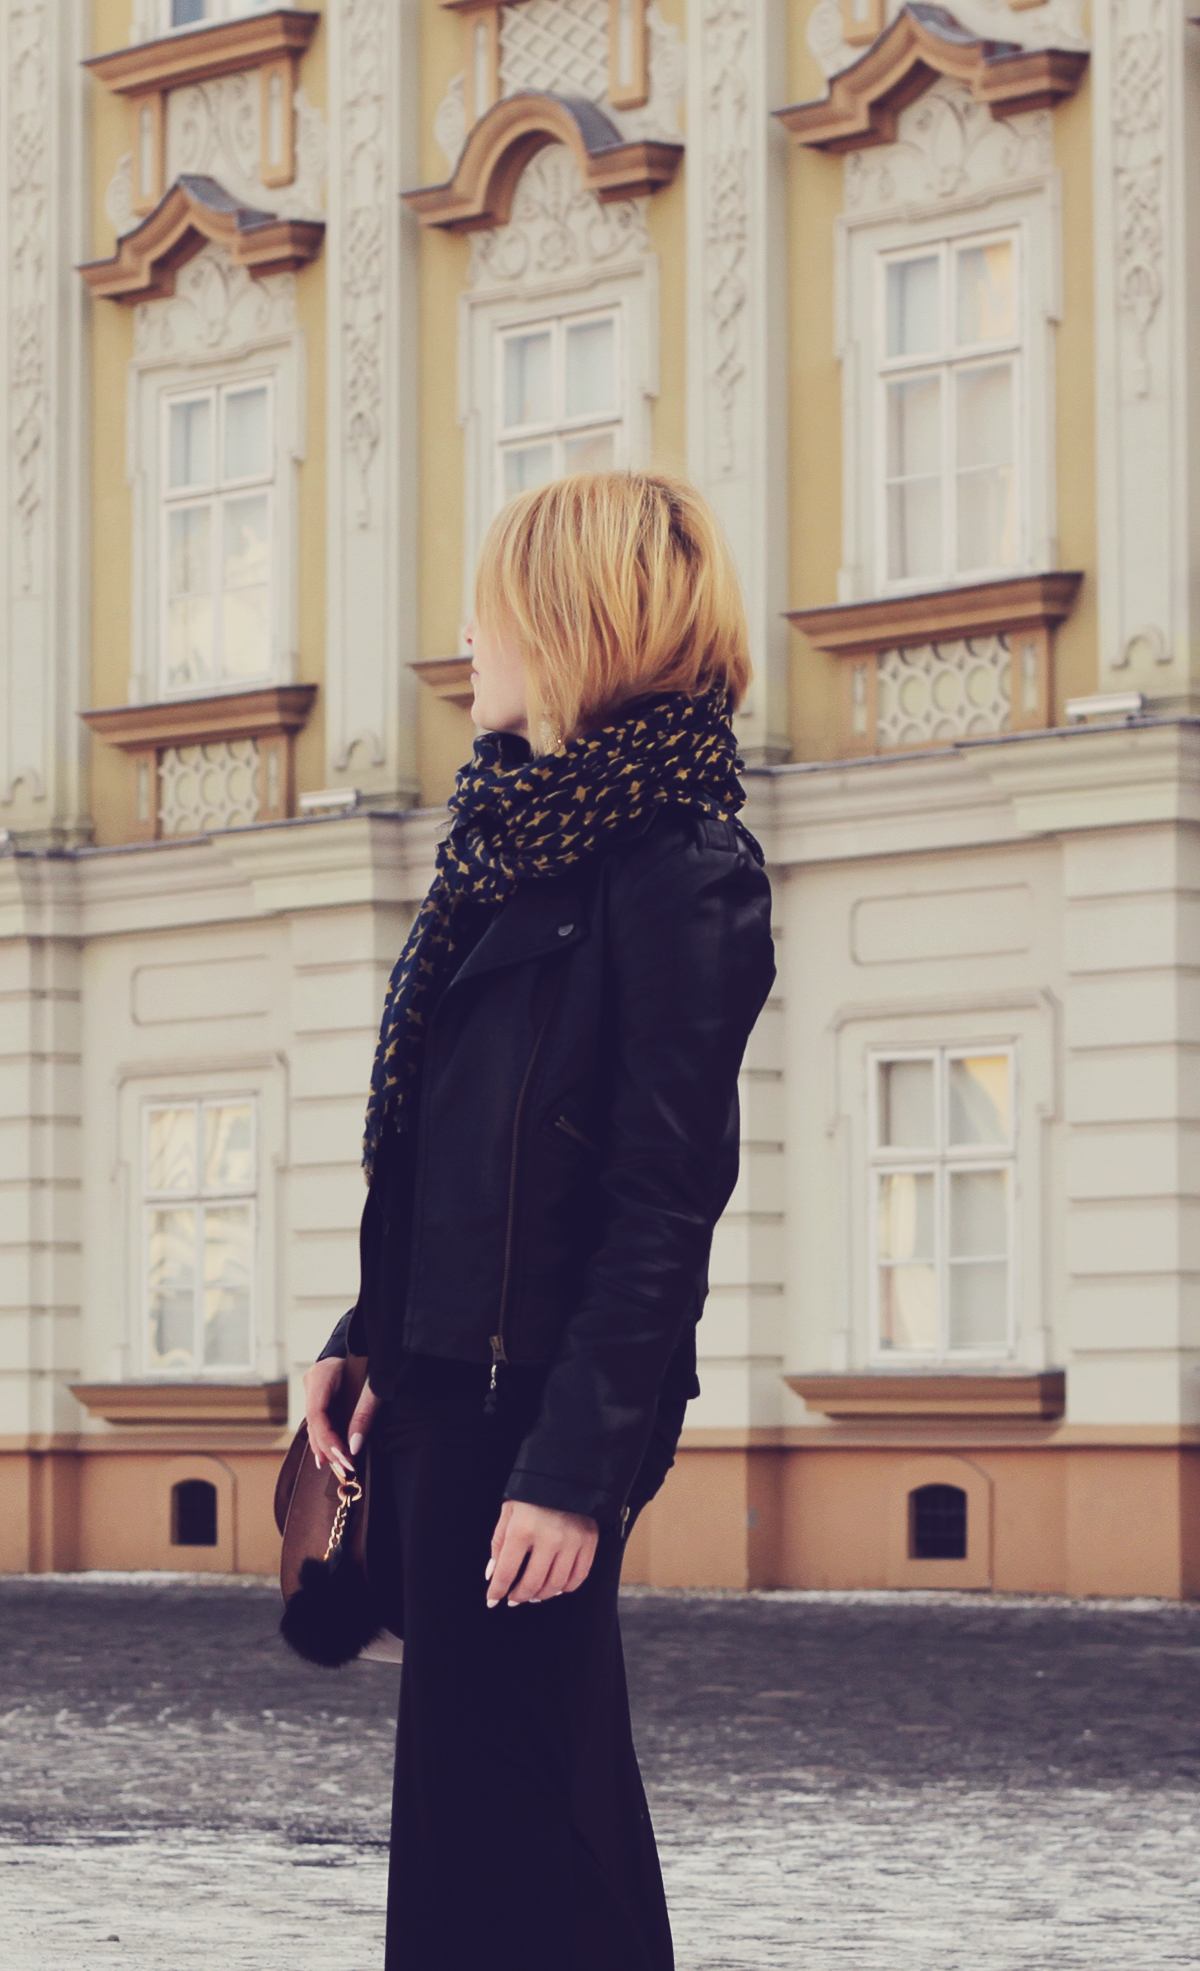 long black skirt and leather jacket